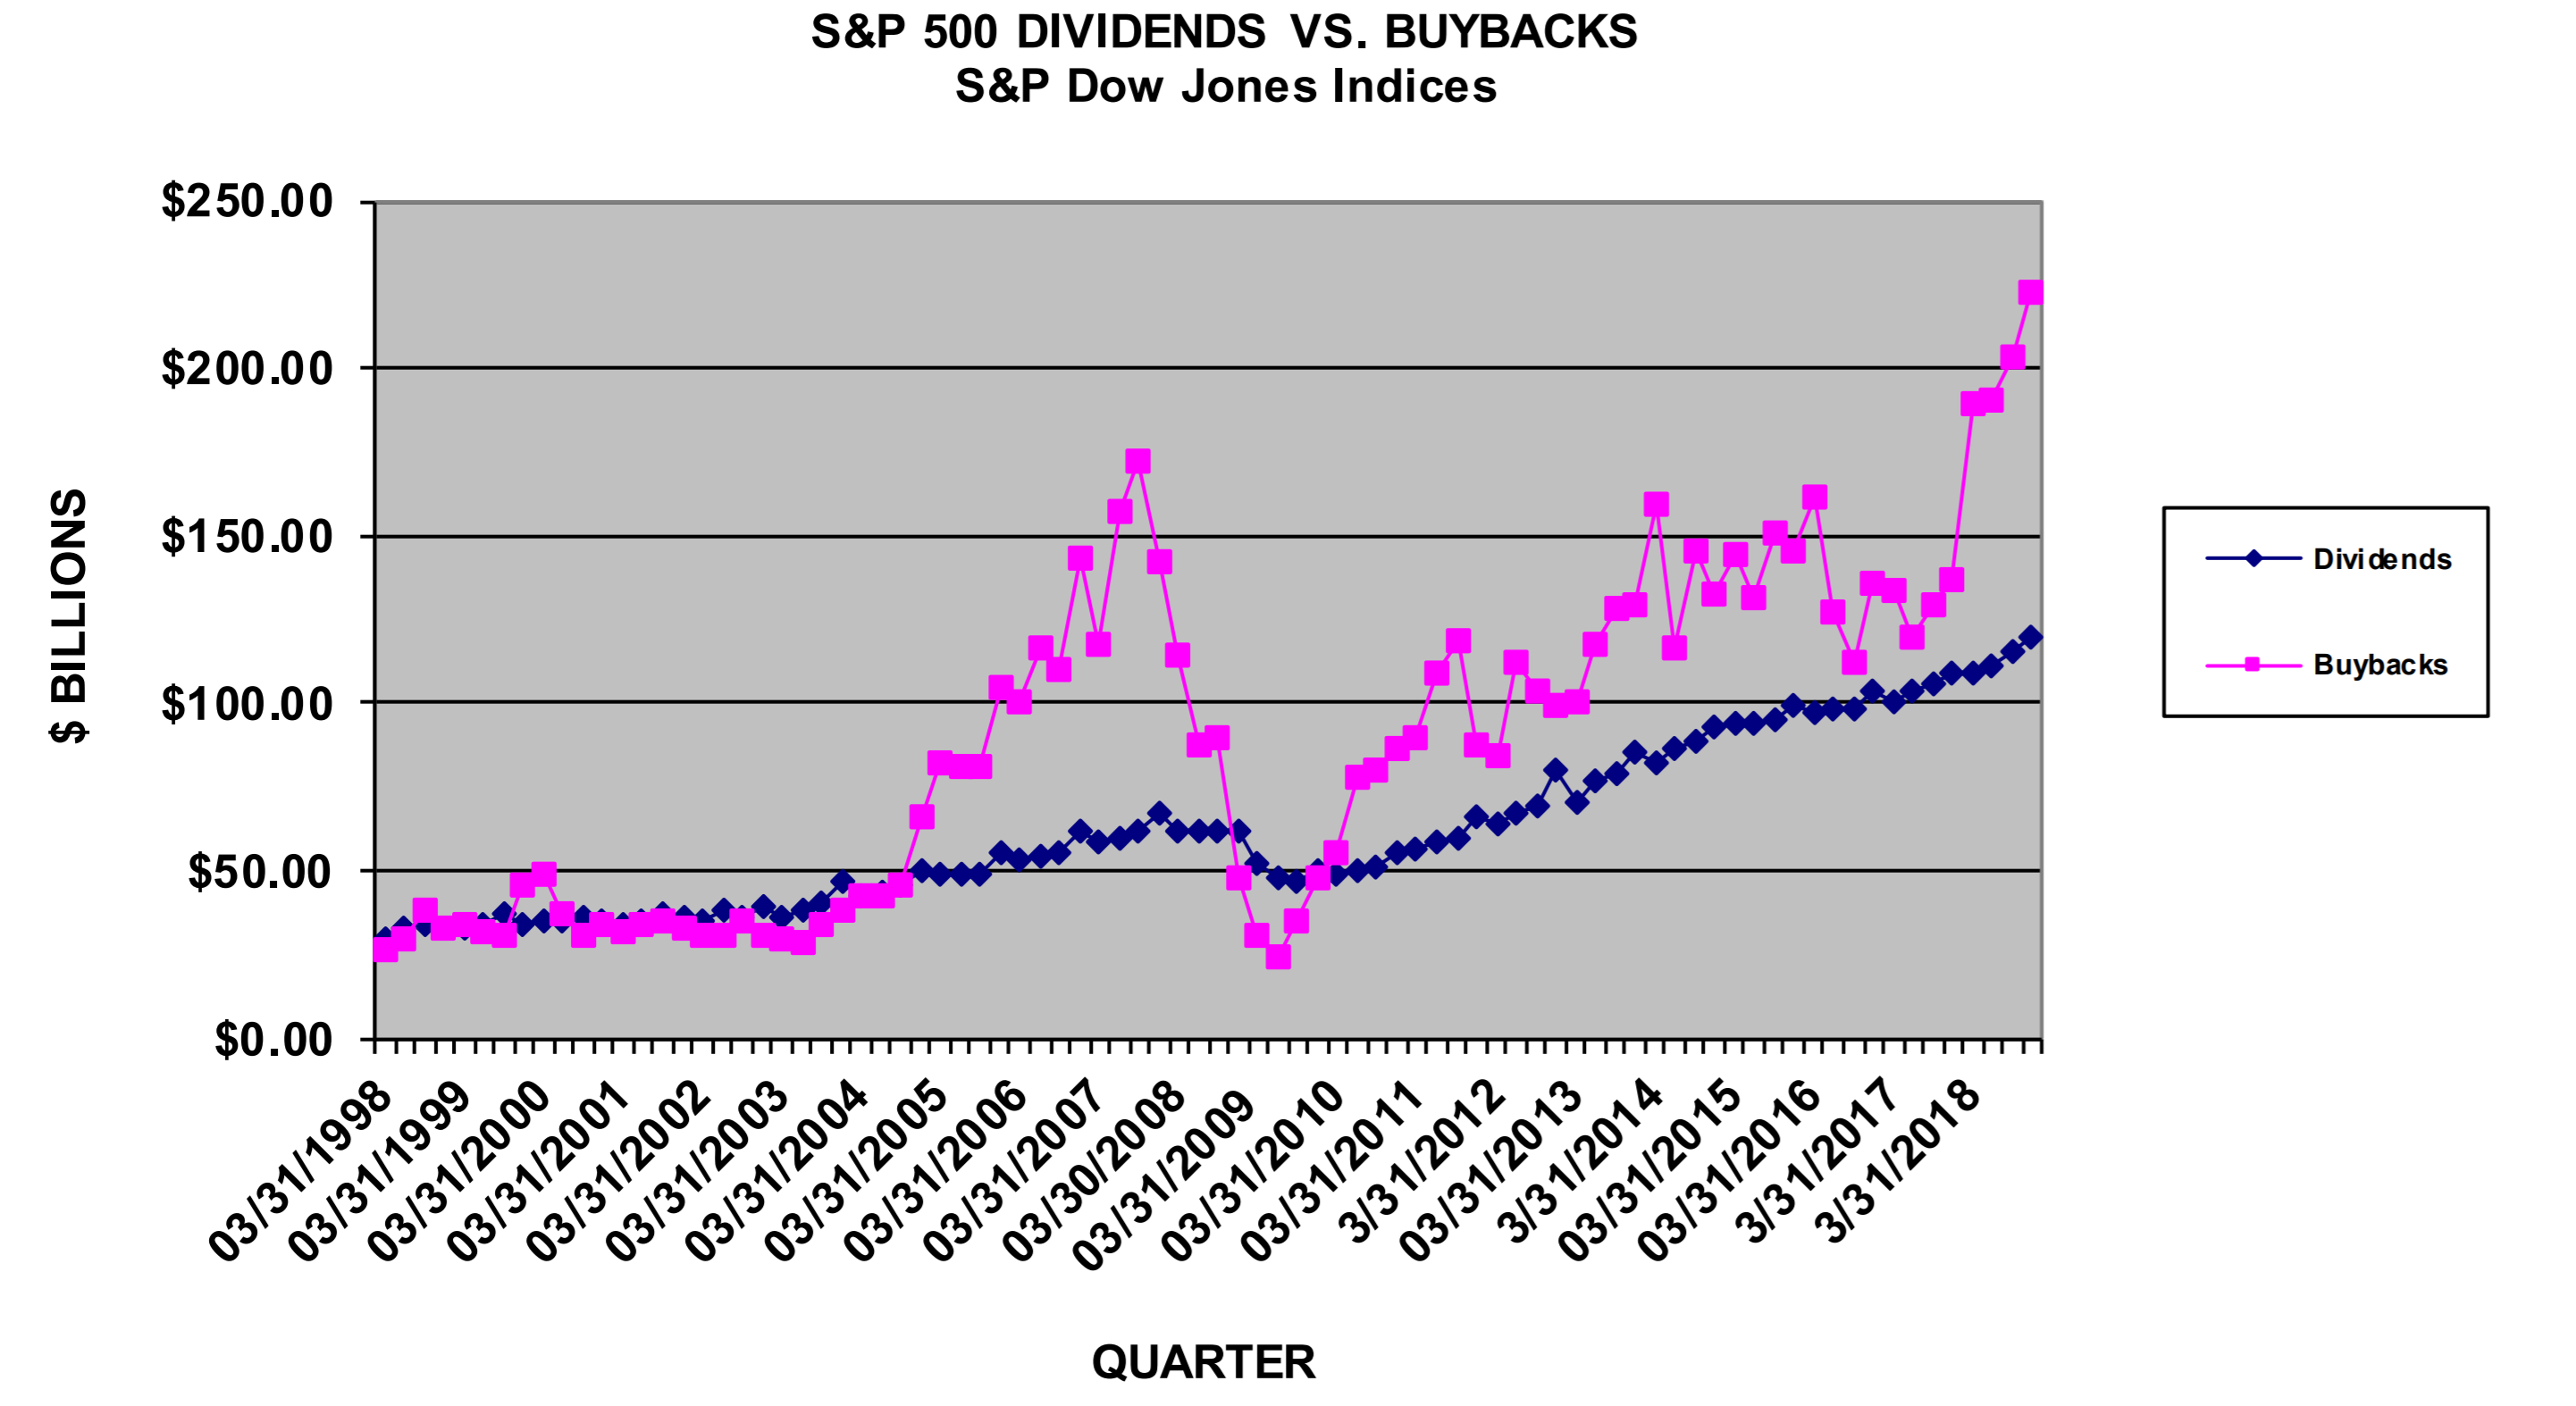 S&P 500 Dividends vs. Buybacks 1998-2019